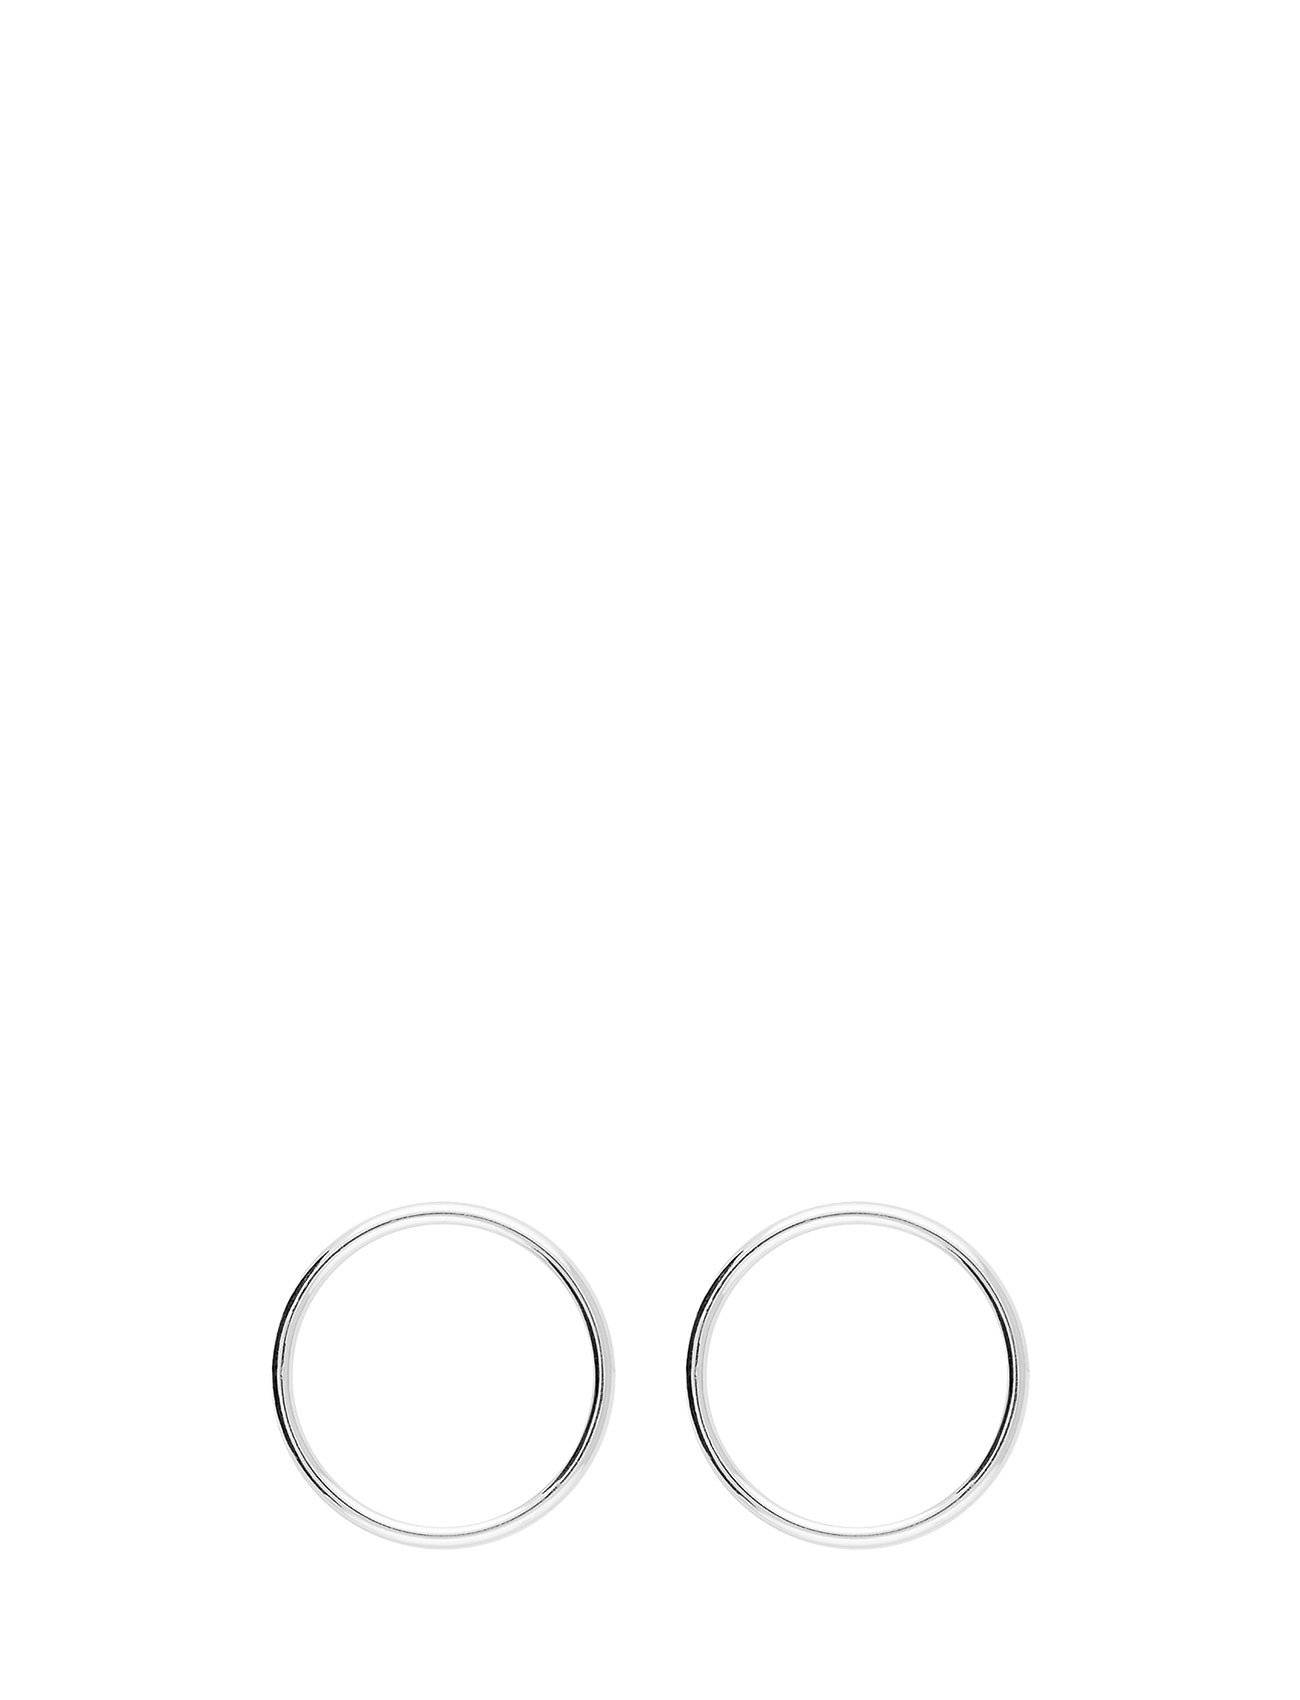 SOPHIE by SOPHIE Circle Giant Earring